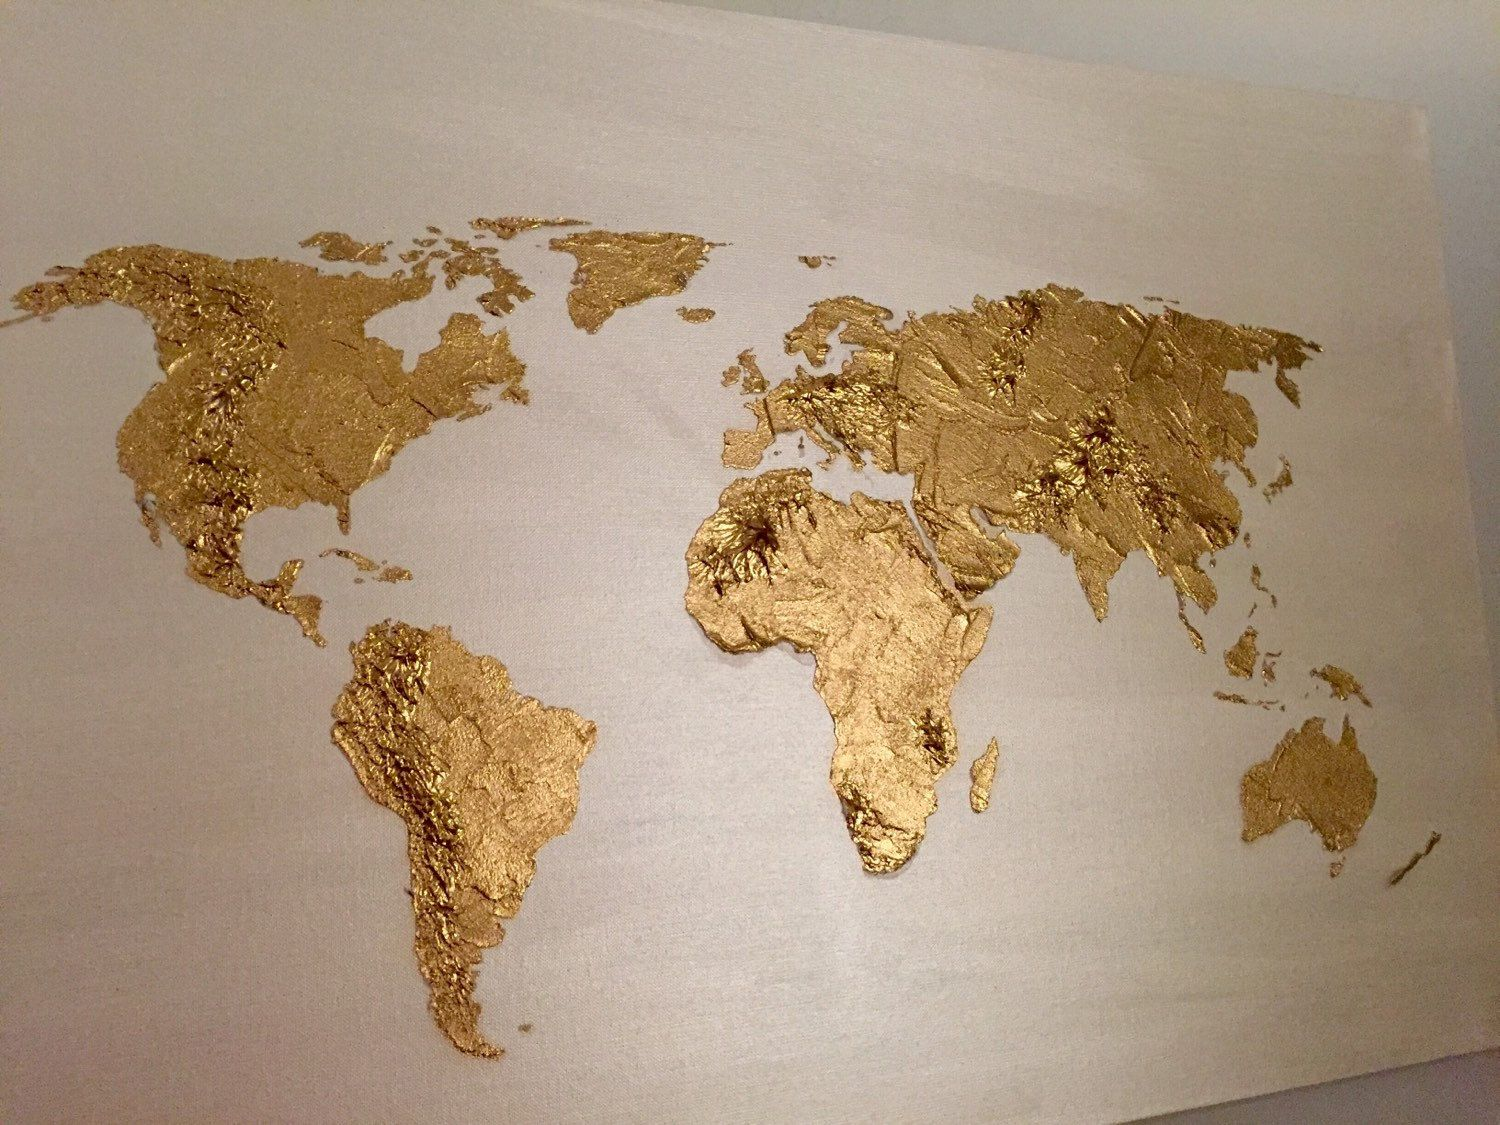 Pin by ren smithe on metallics gold glistening pinterest original world map painting acrylic world map art globe world map canvas painting world map art gold world map art world gumiabroncs Choice Image